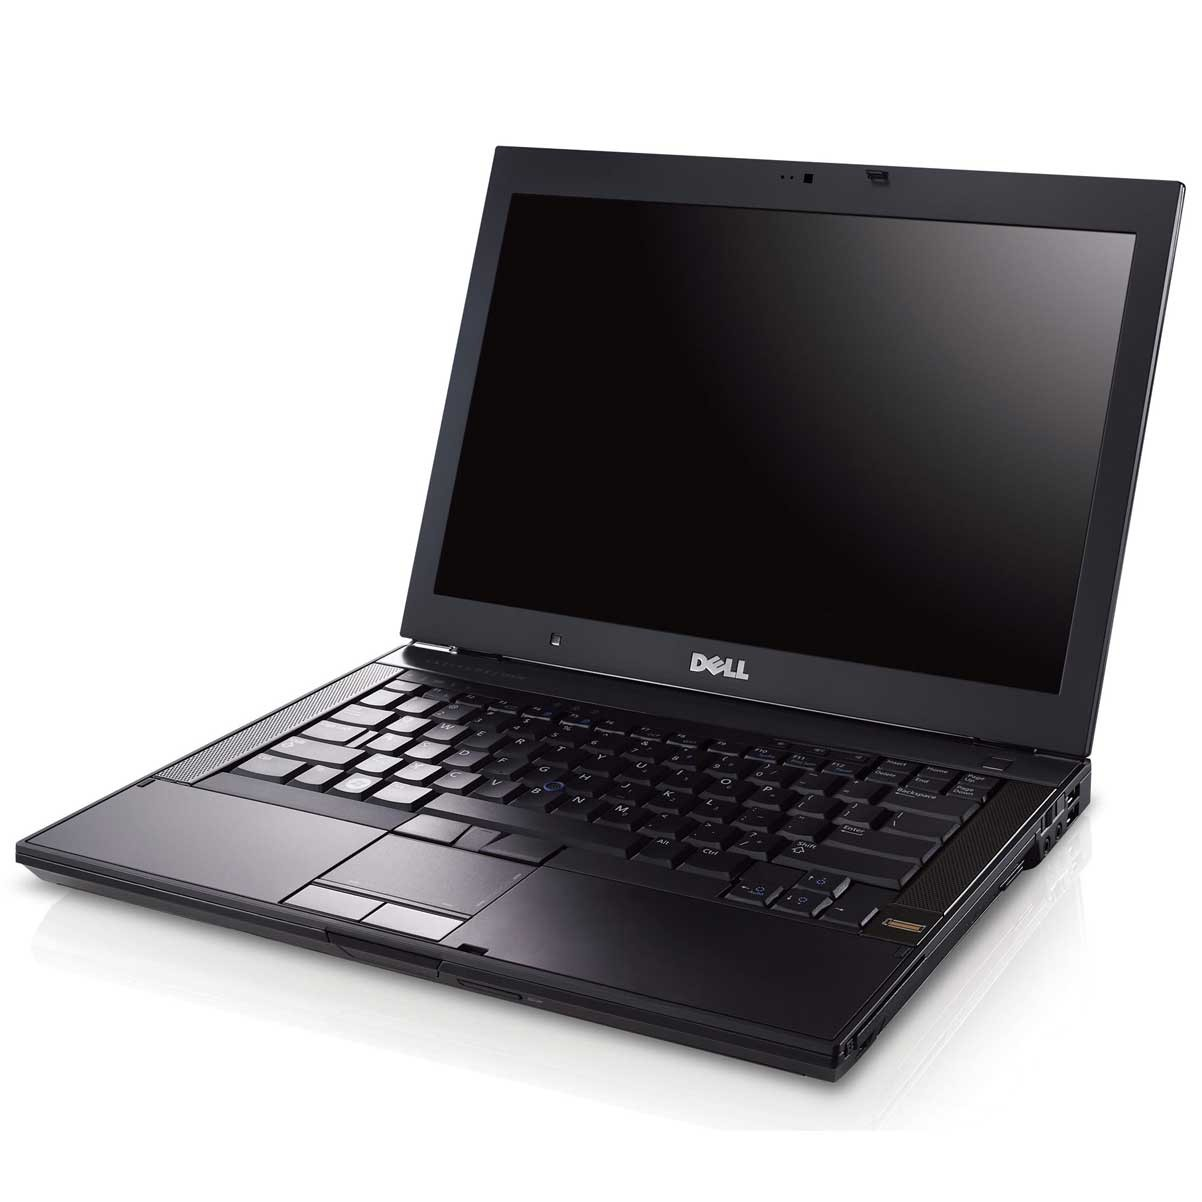 DELL LATITUDE E6400 - XP Professionnel